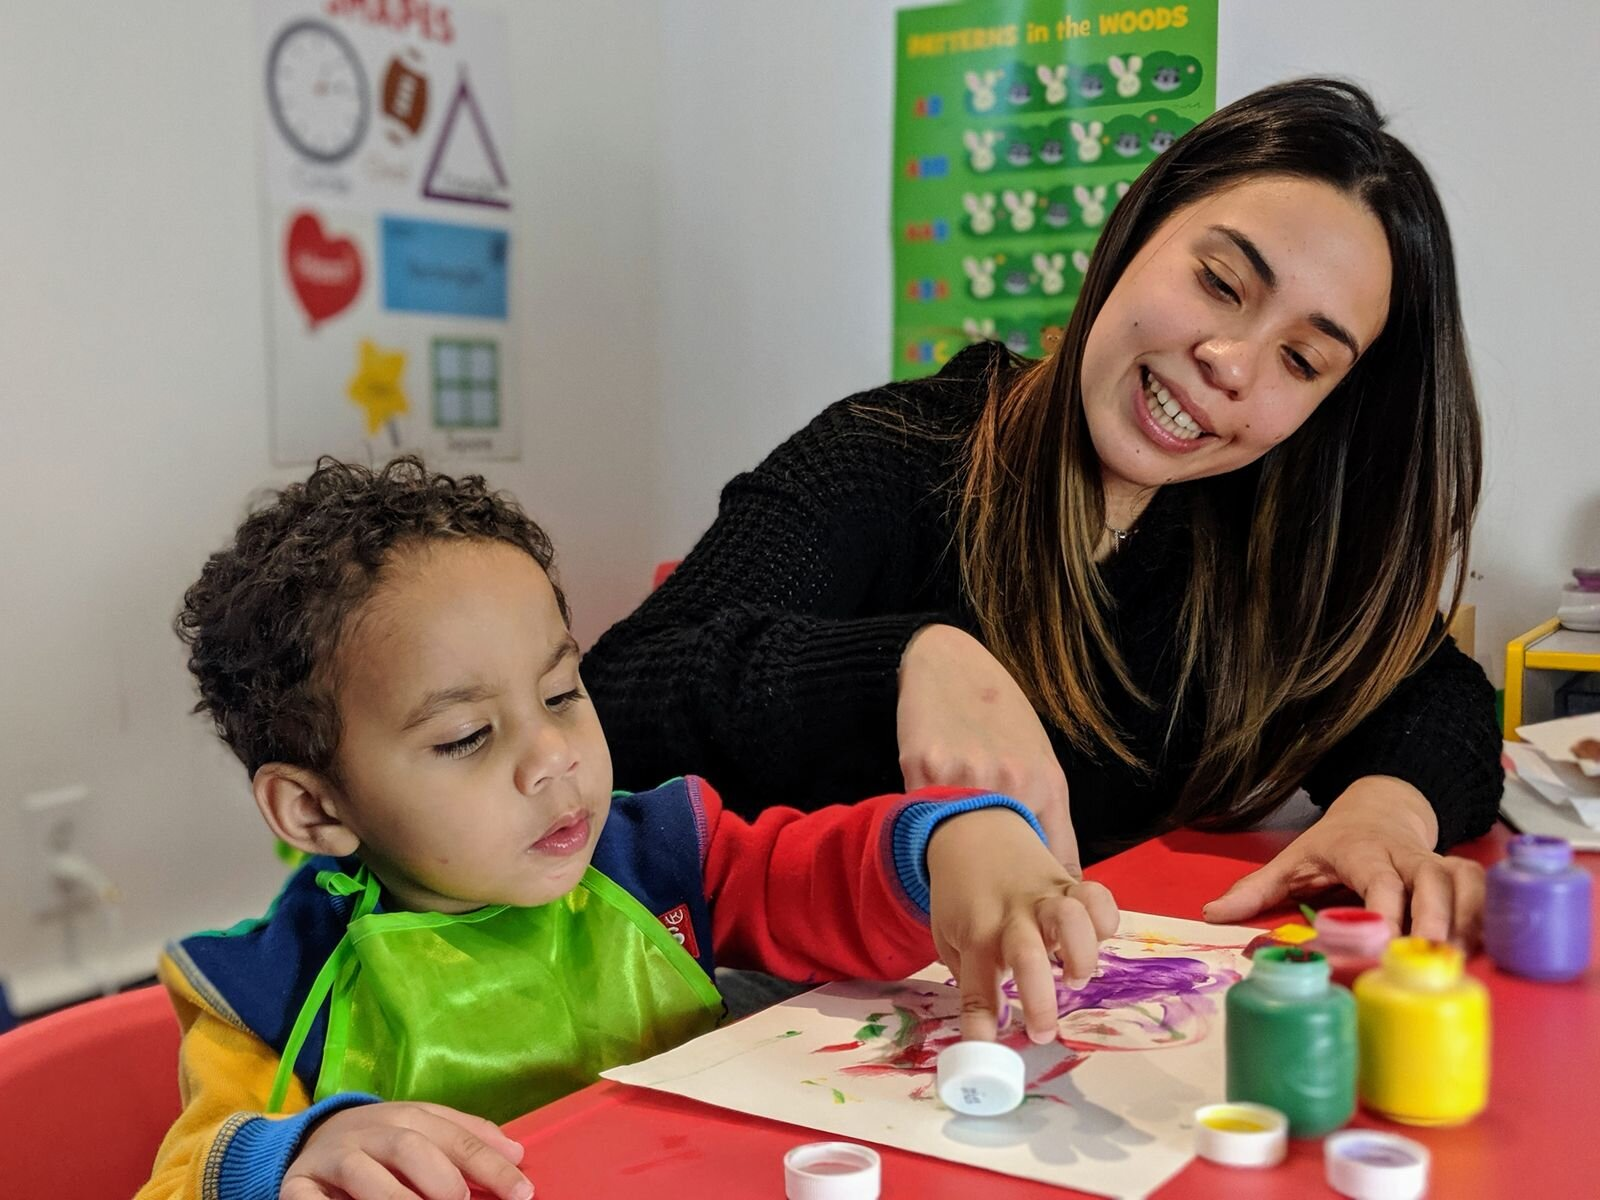 Ms. Valeria plays with a child at her home daycare in Mattapan, MA.